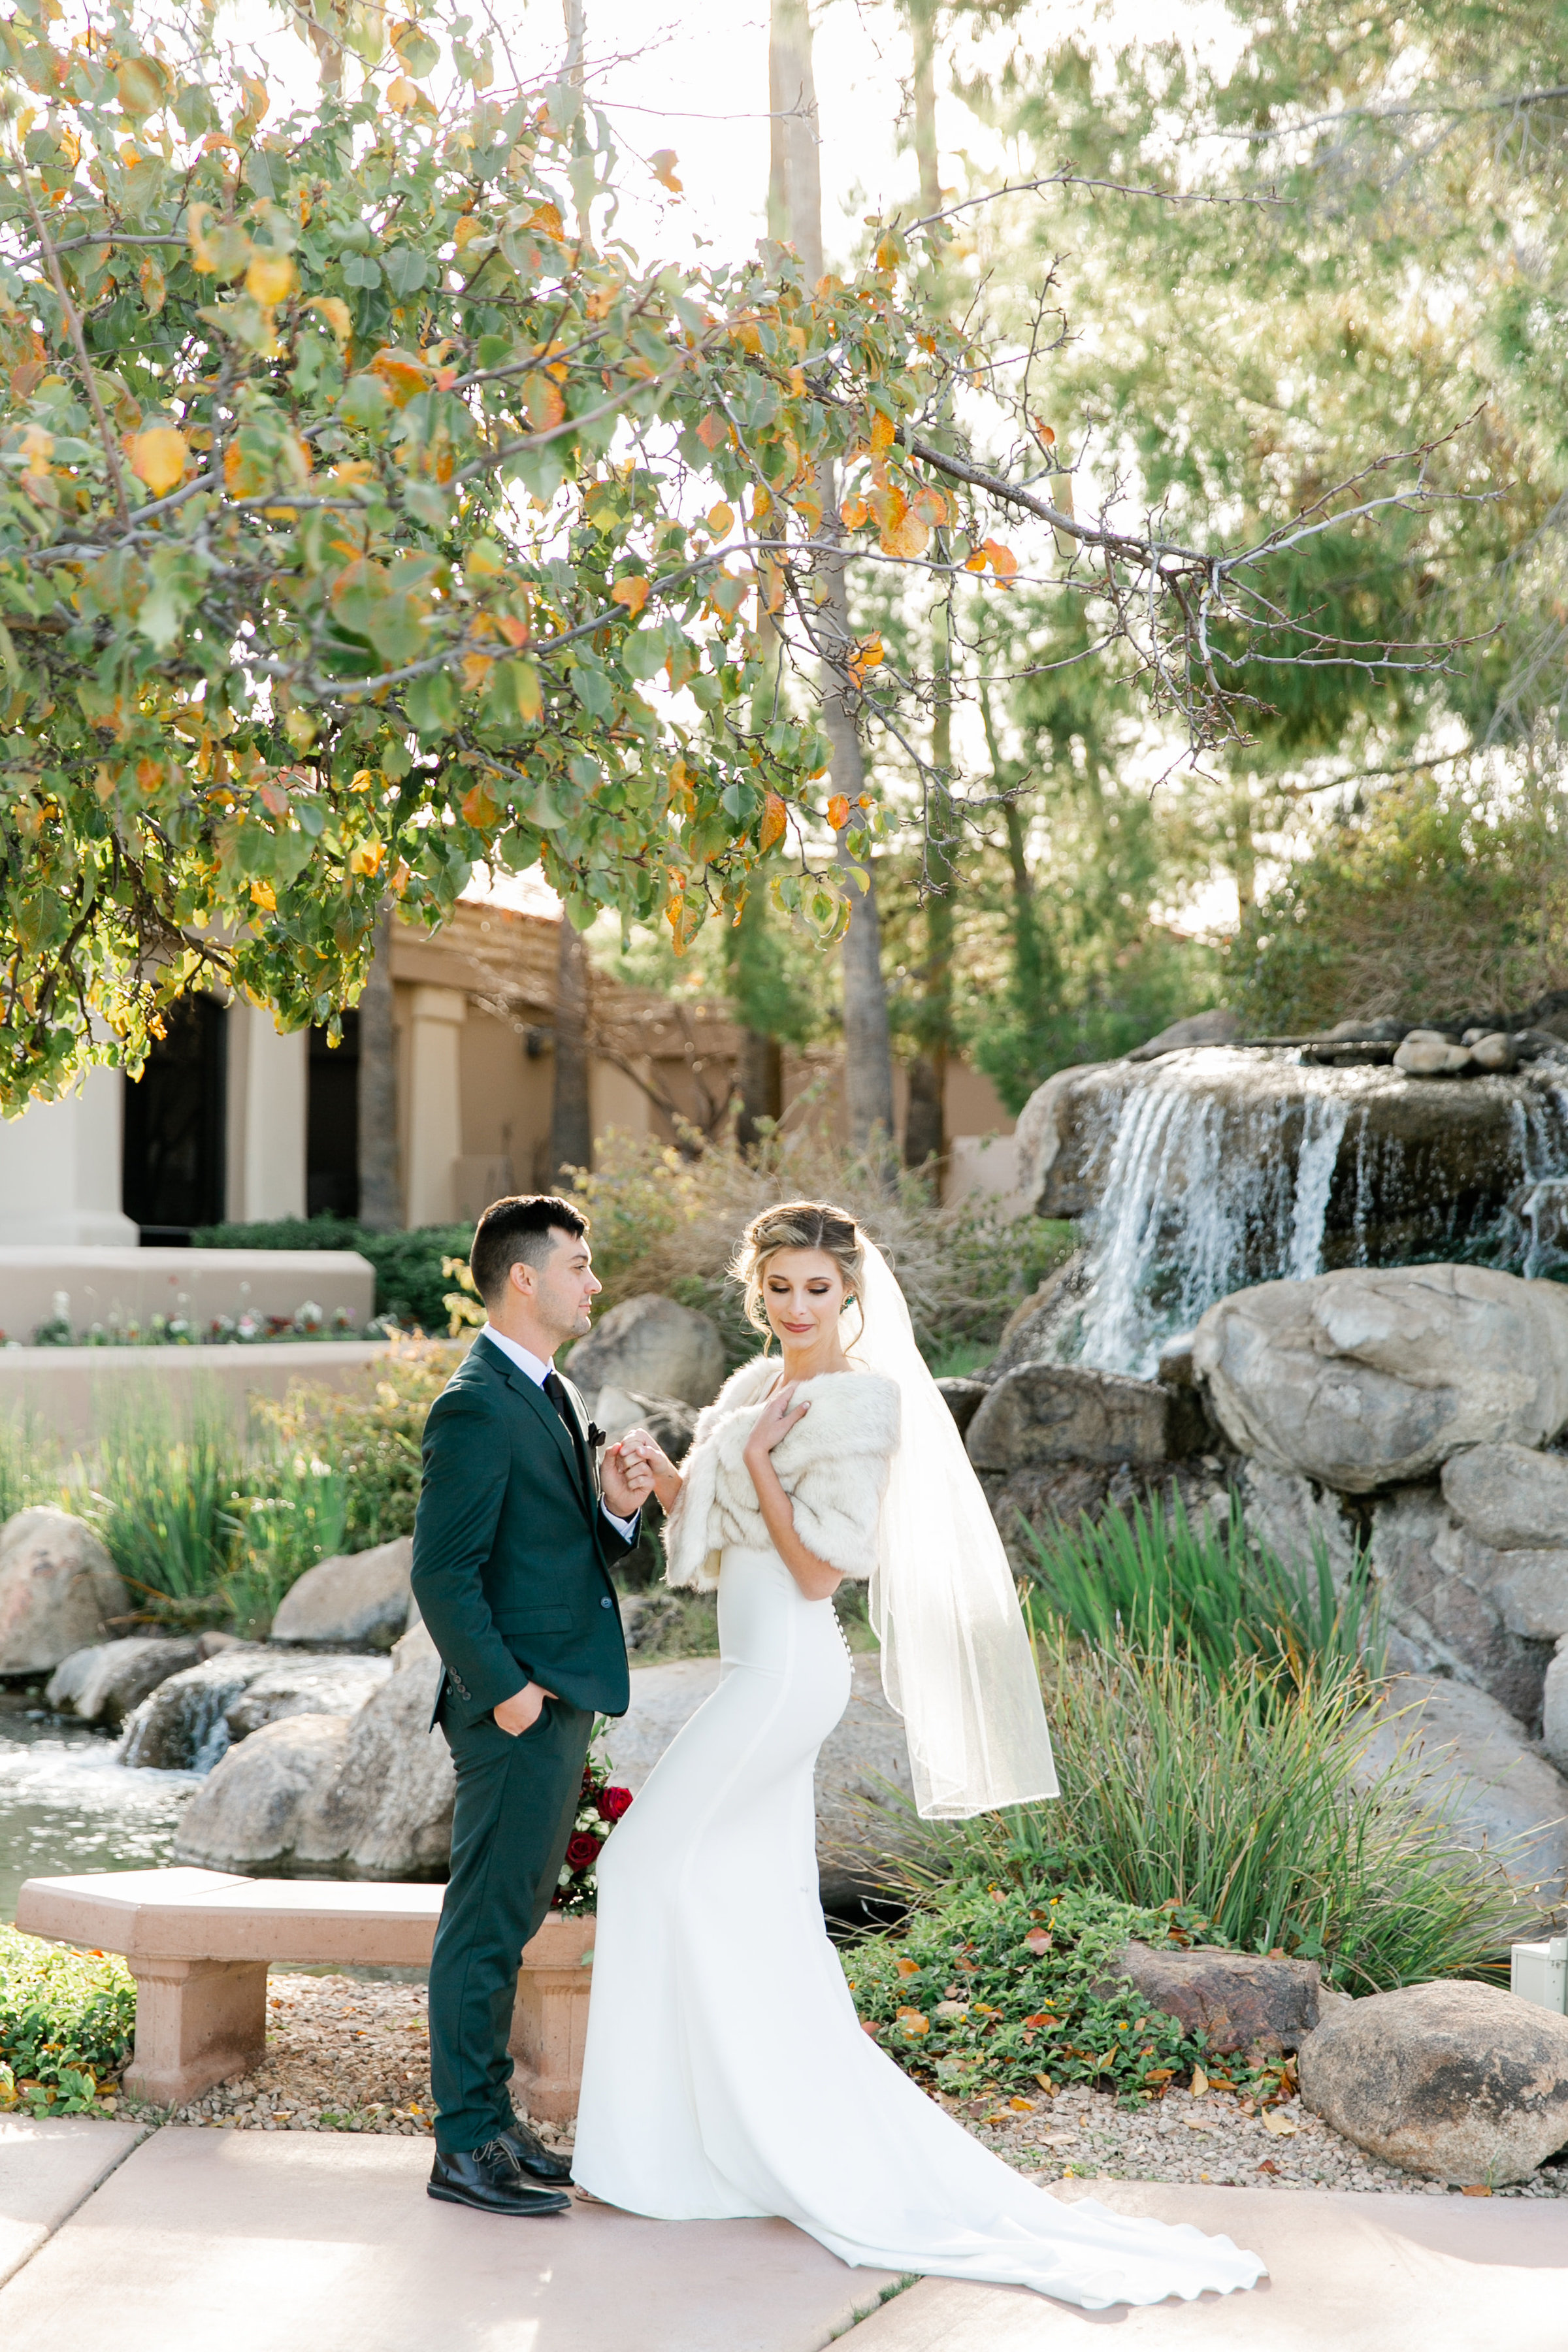 Karlie Colleen Photography - Gilbert Wedding - Val Vista Lakes - Brynne & Josh-36